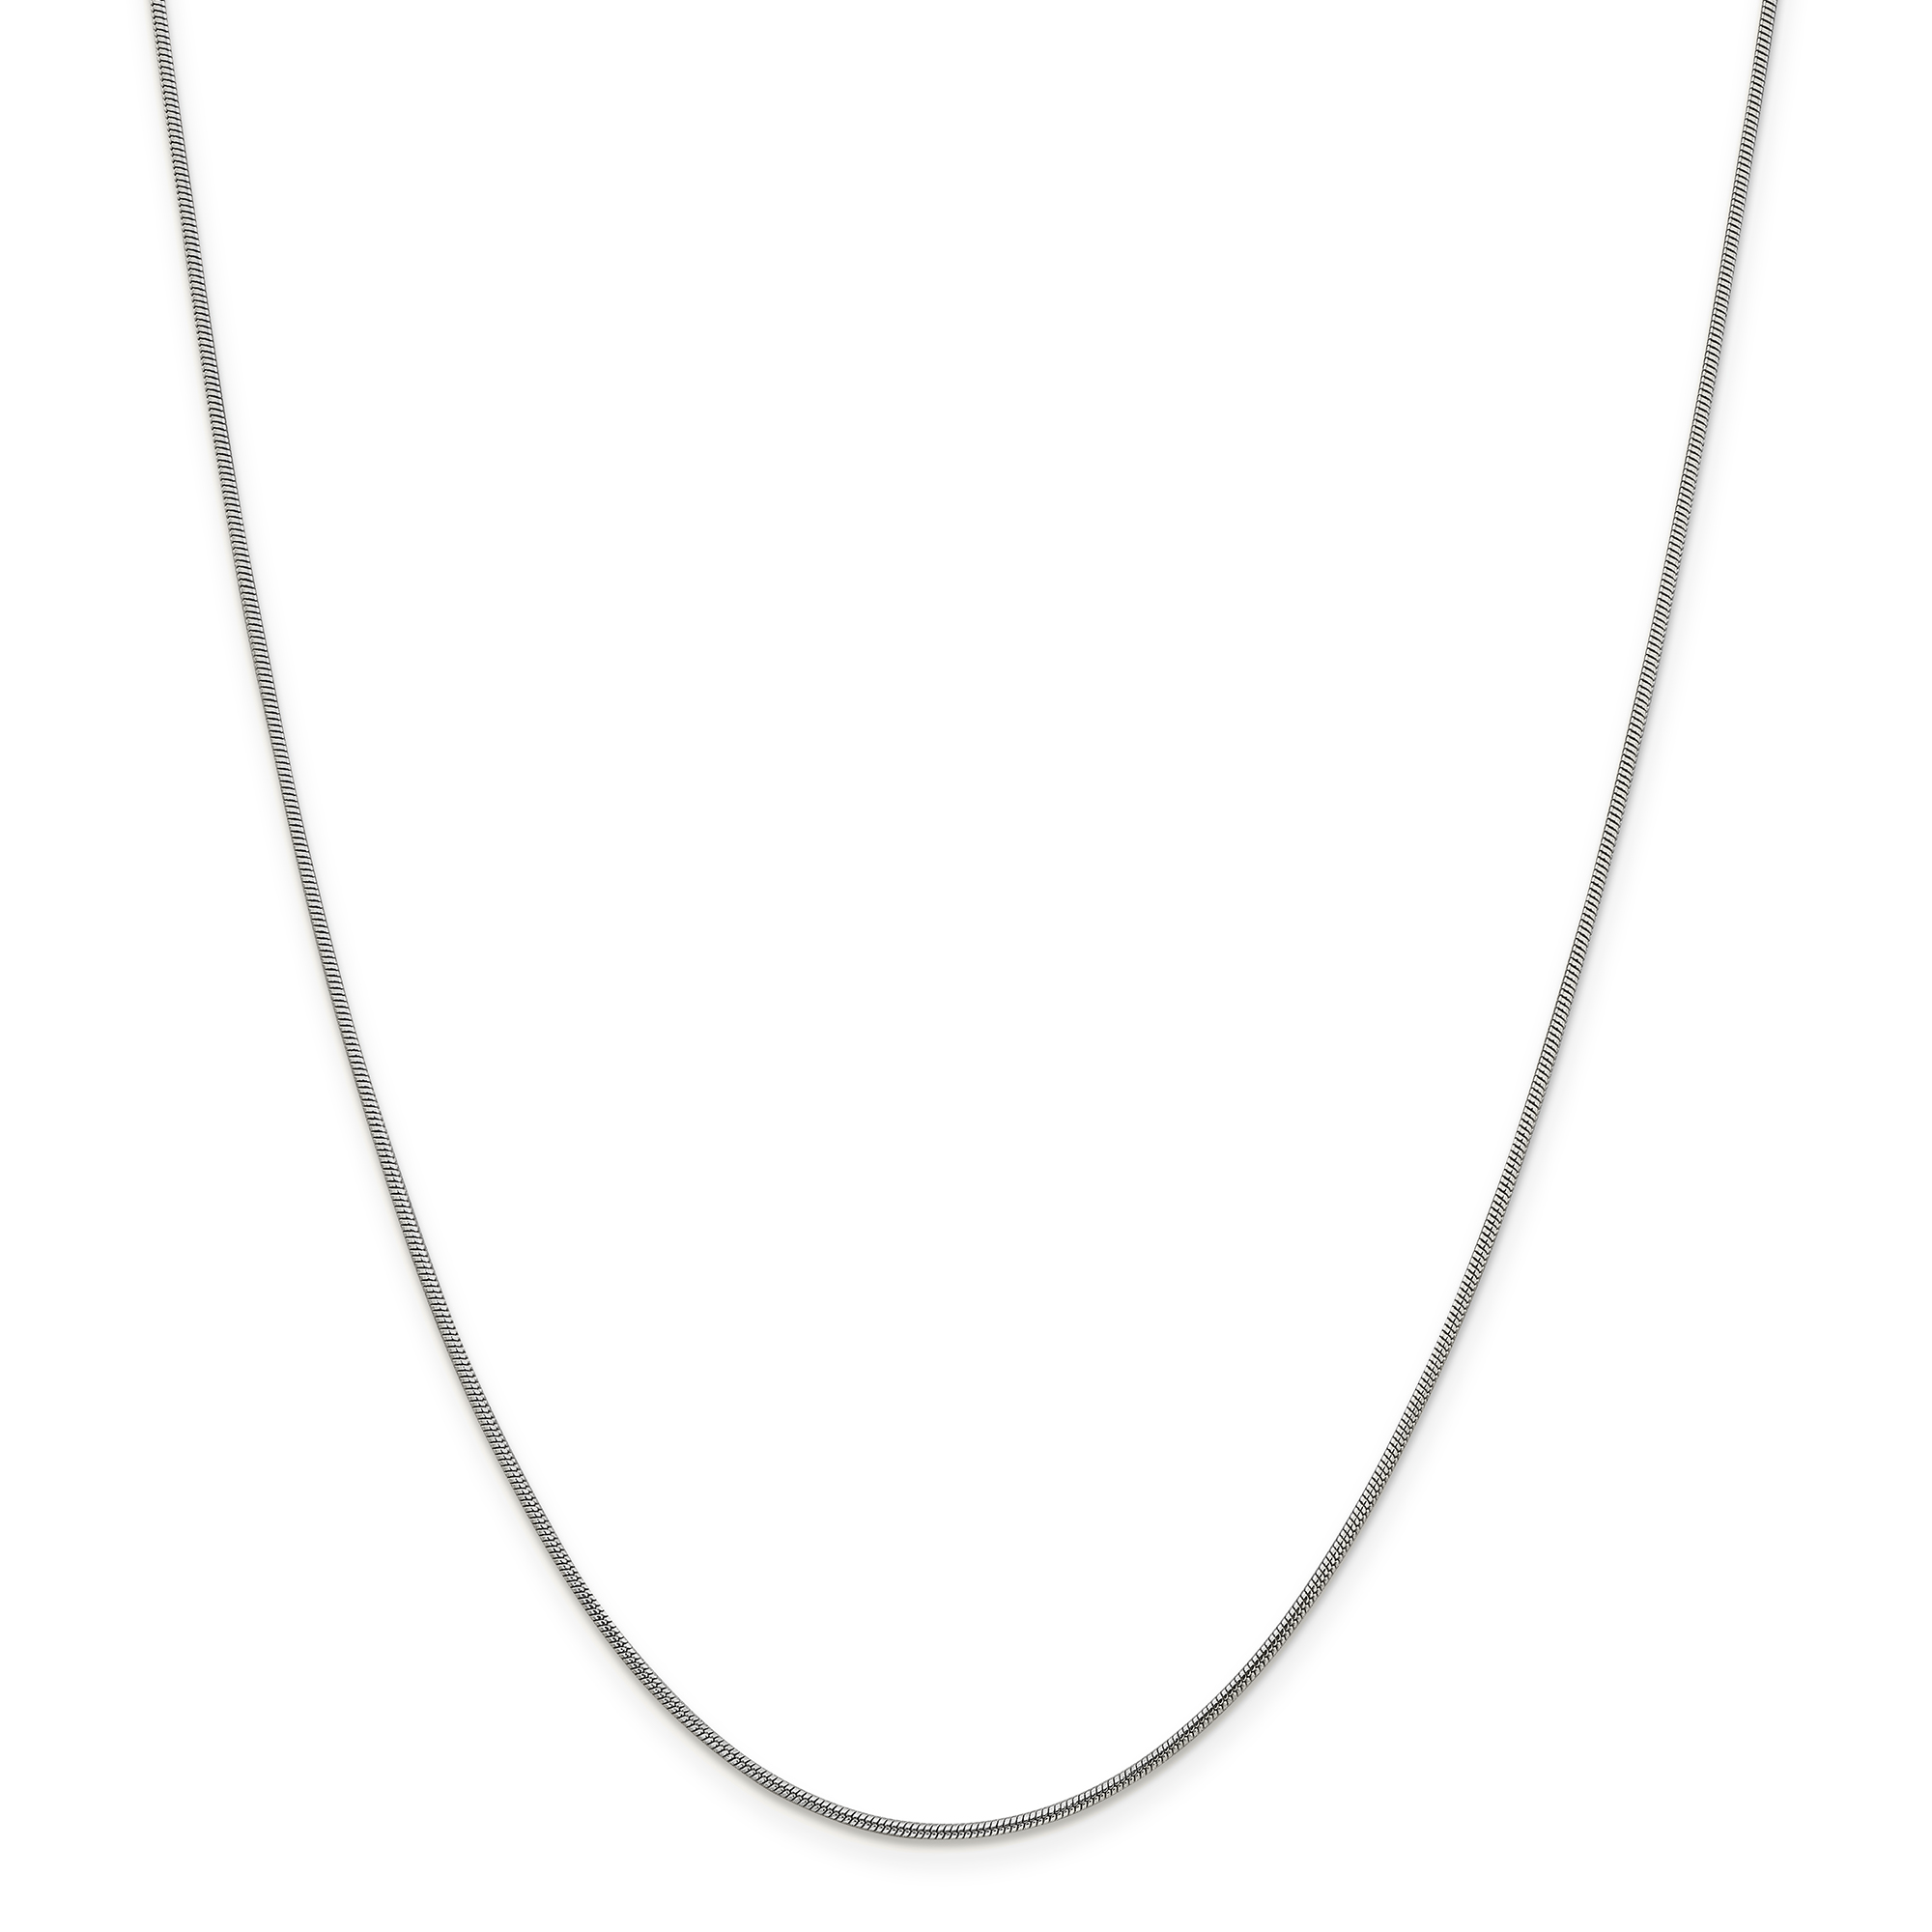 925 Sterling Silver 1.2mm Round Snake Chain Necklace 30 Inch Pendant Charm Fine Jewelry Gifts For Women For Her - image 5 de 5